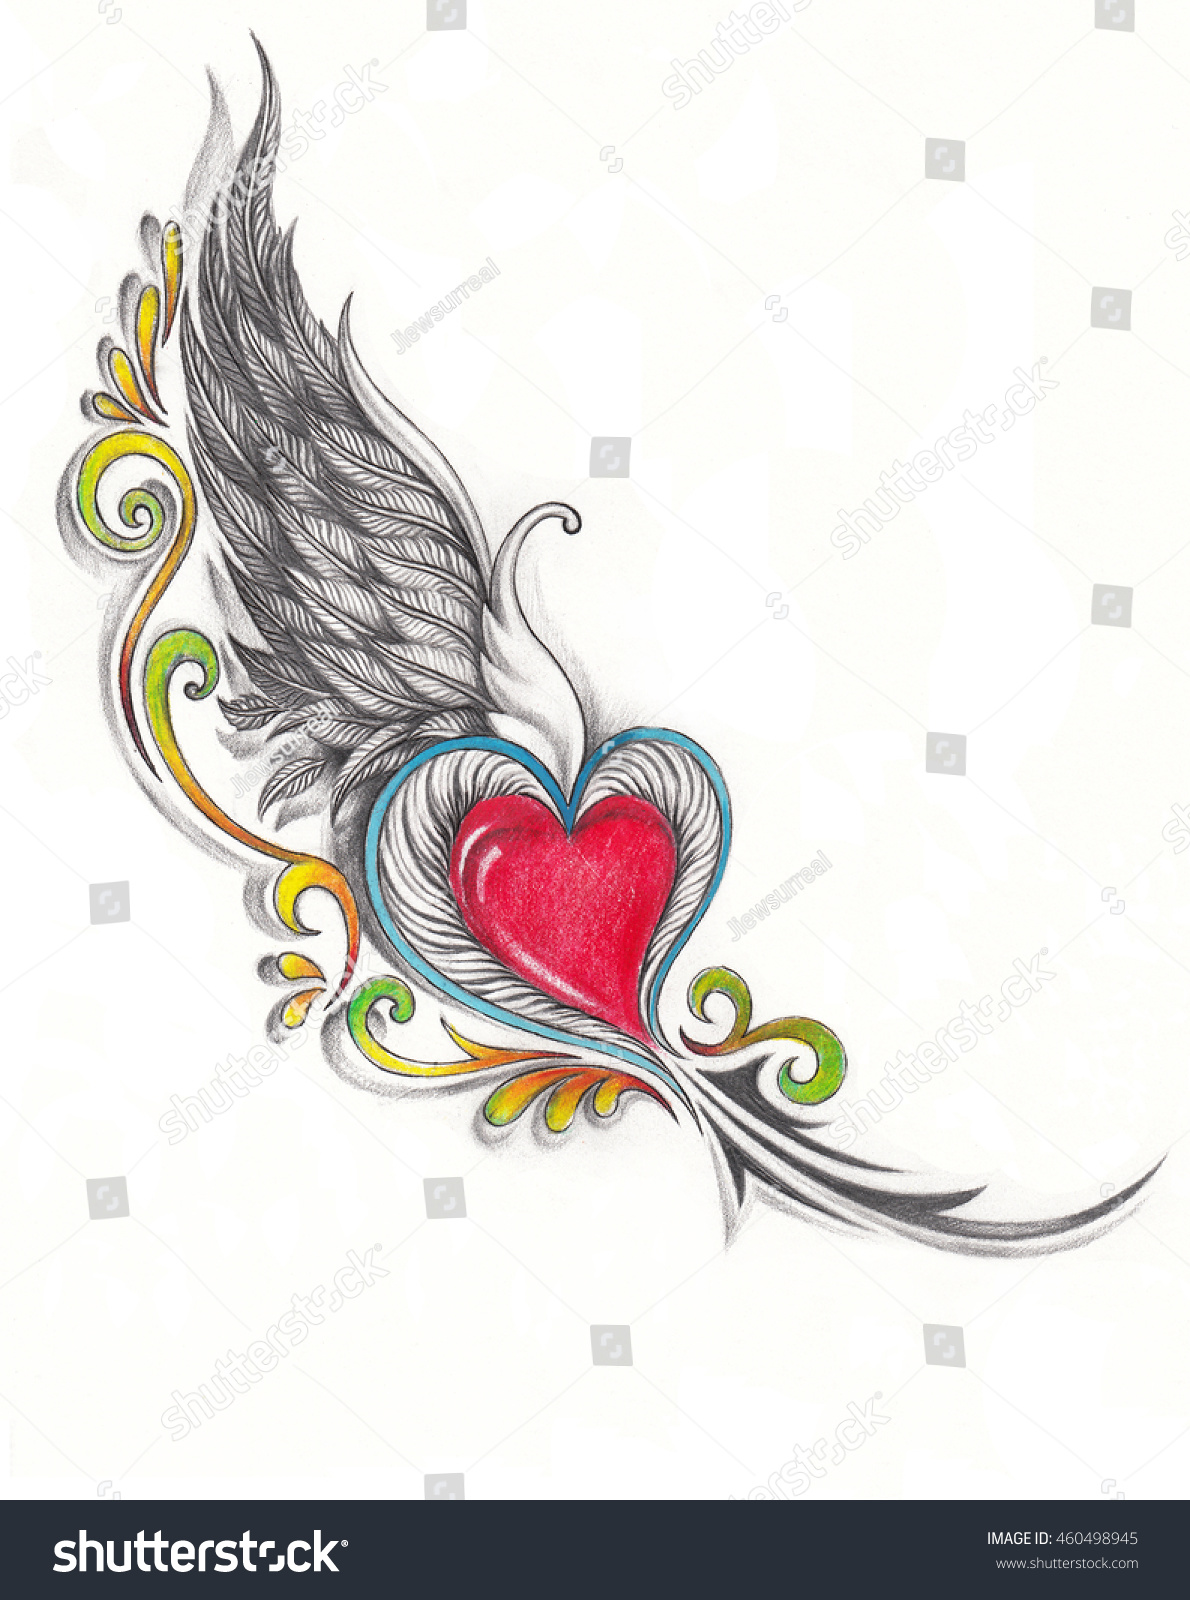 Wing heart tattoo design hand pencil drawing on paper